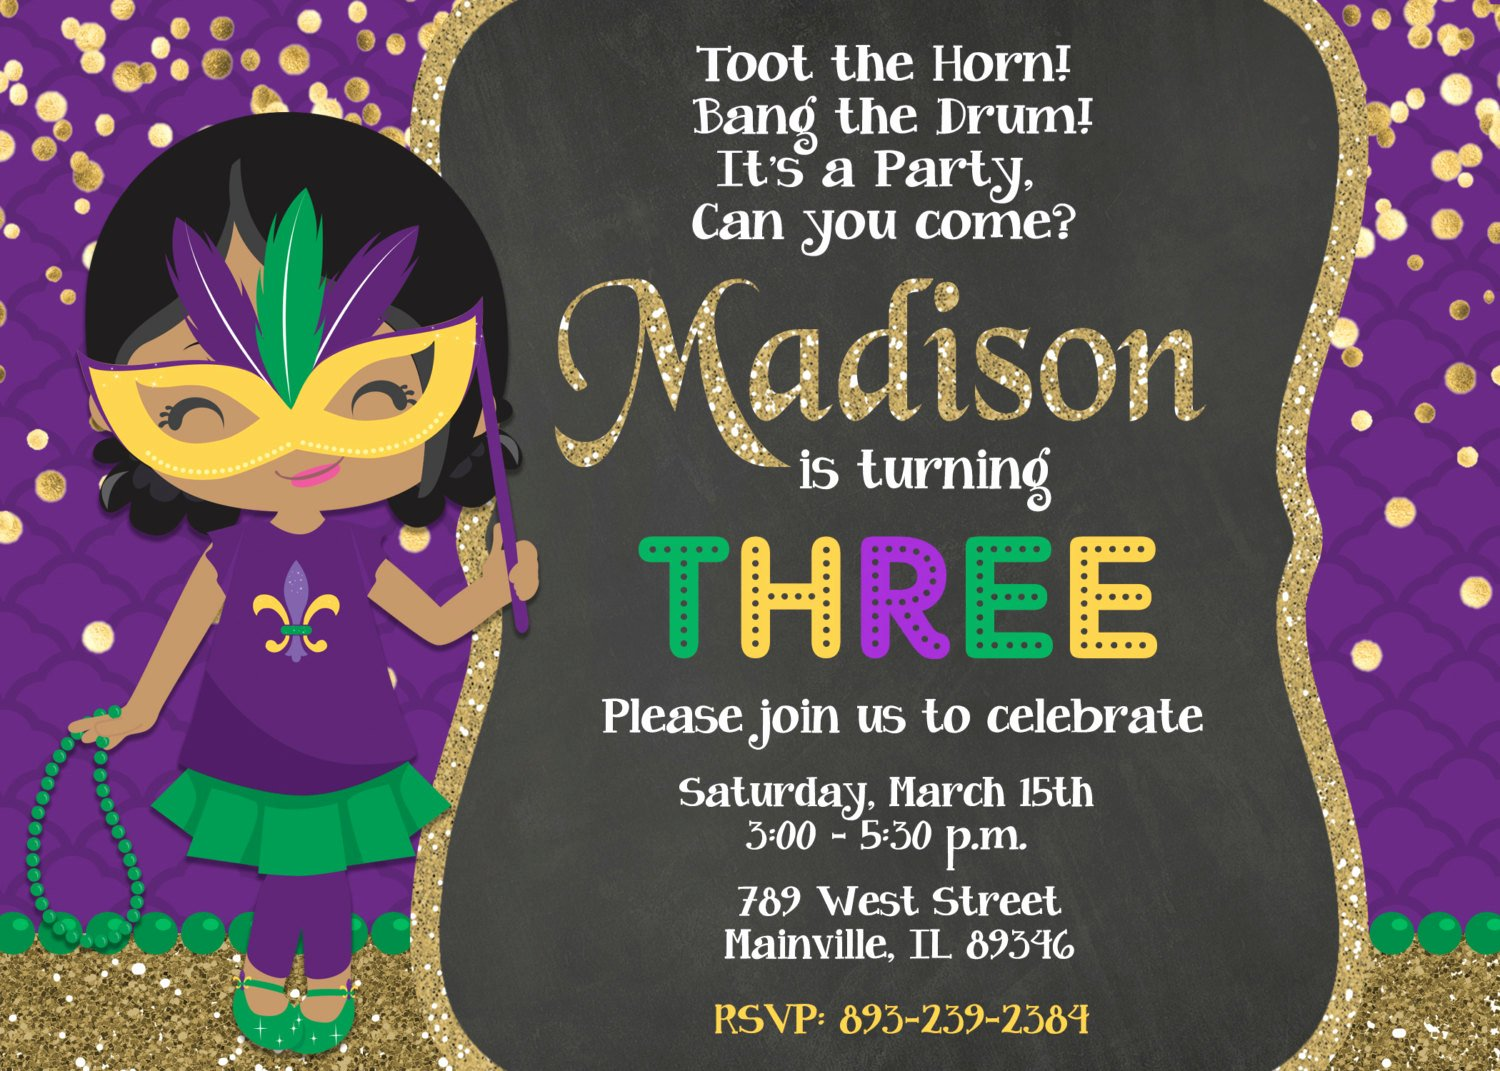 Mardi Gras Invitation Template Free Beautiful Mardi Gras Birthday Party Invitation Mardi Gras Party theme